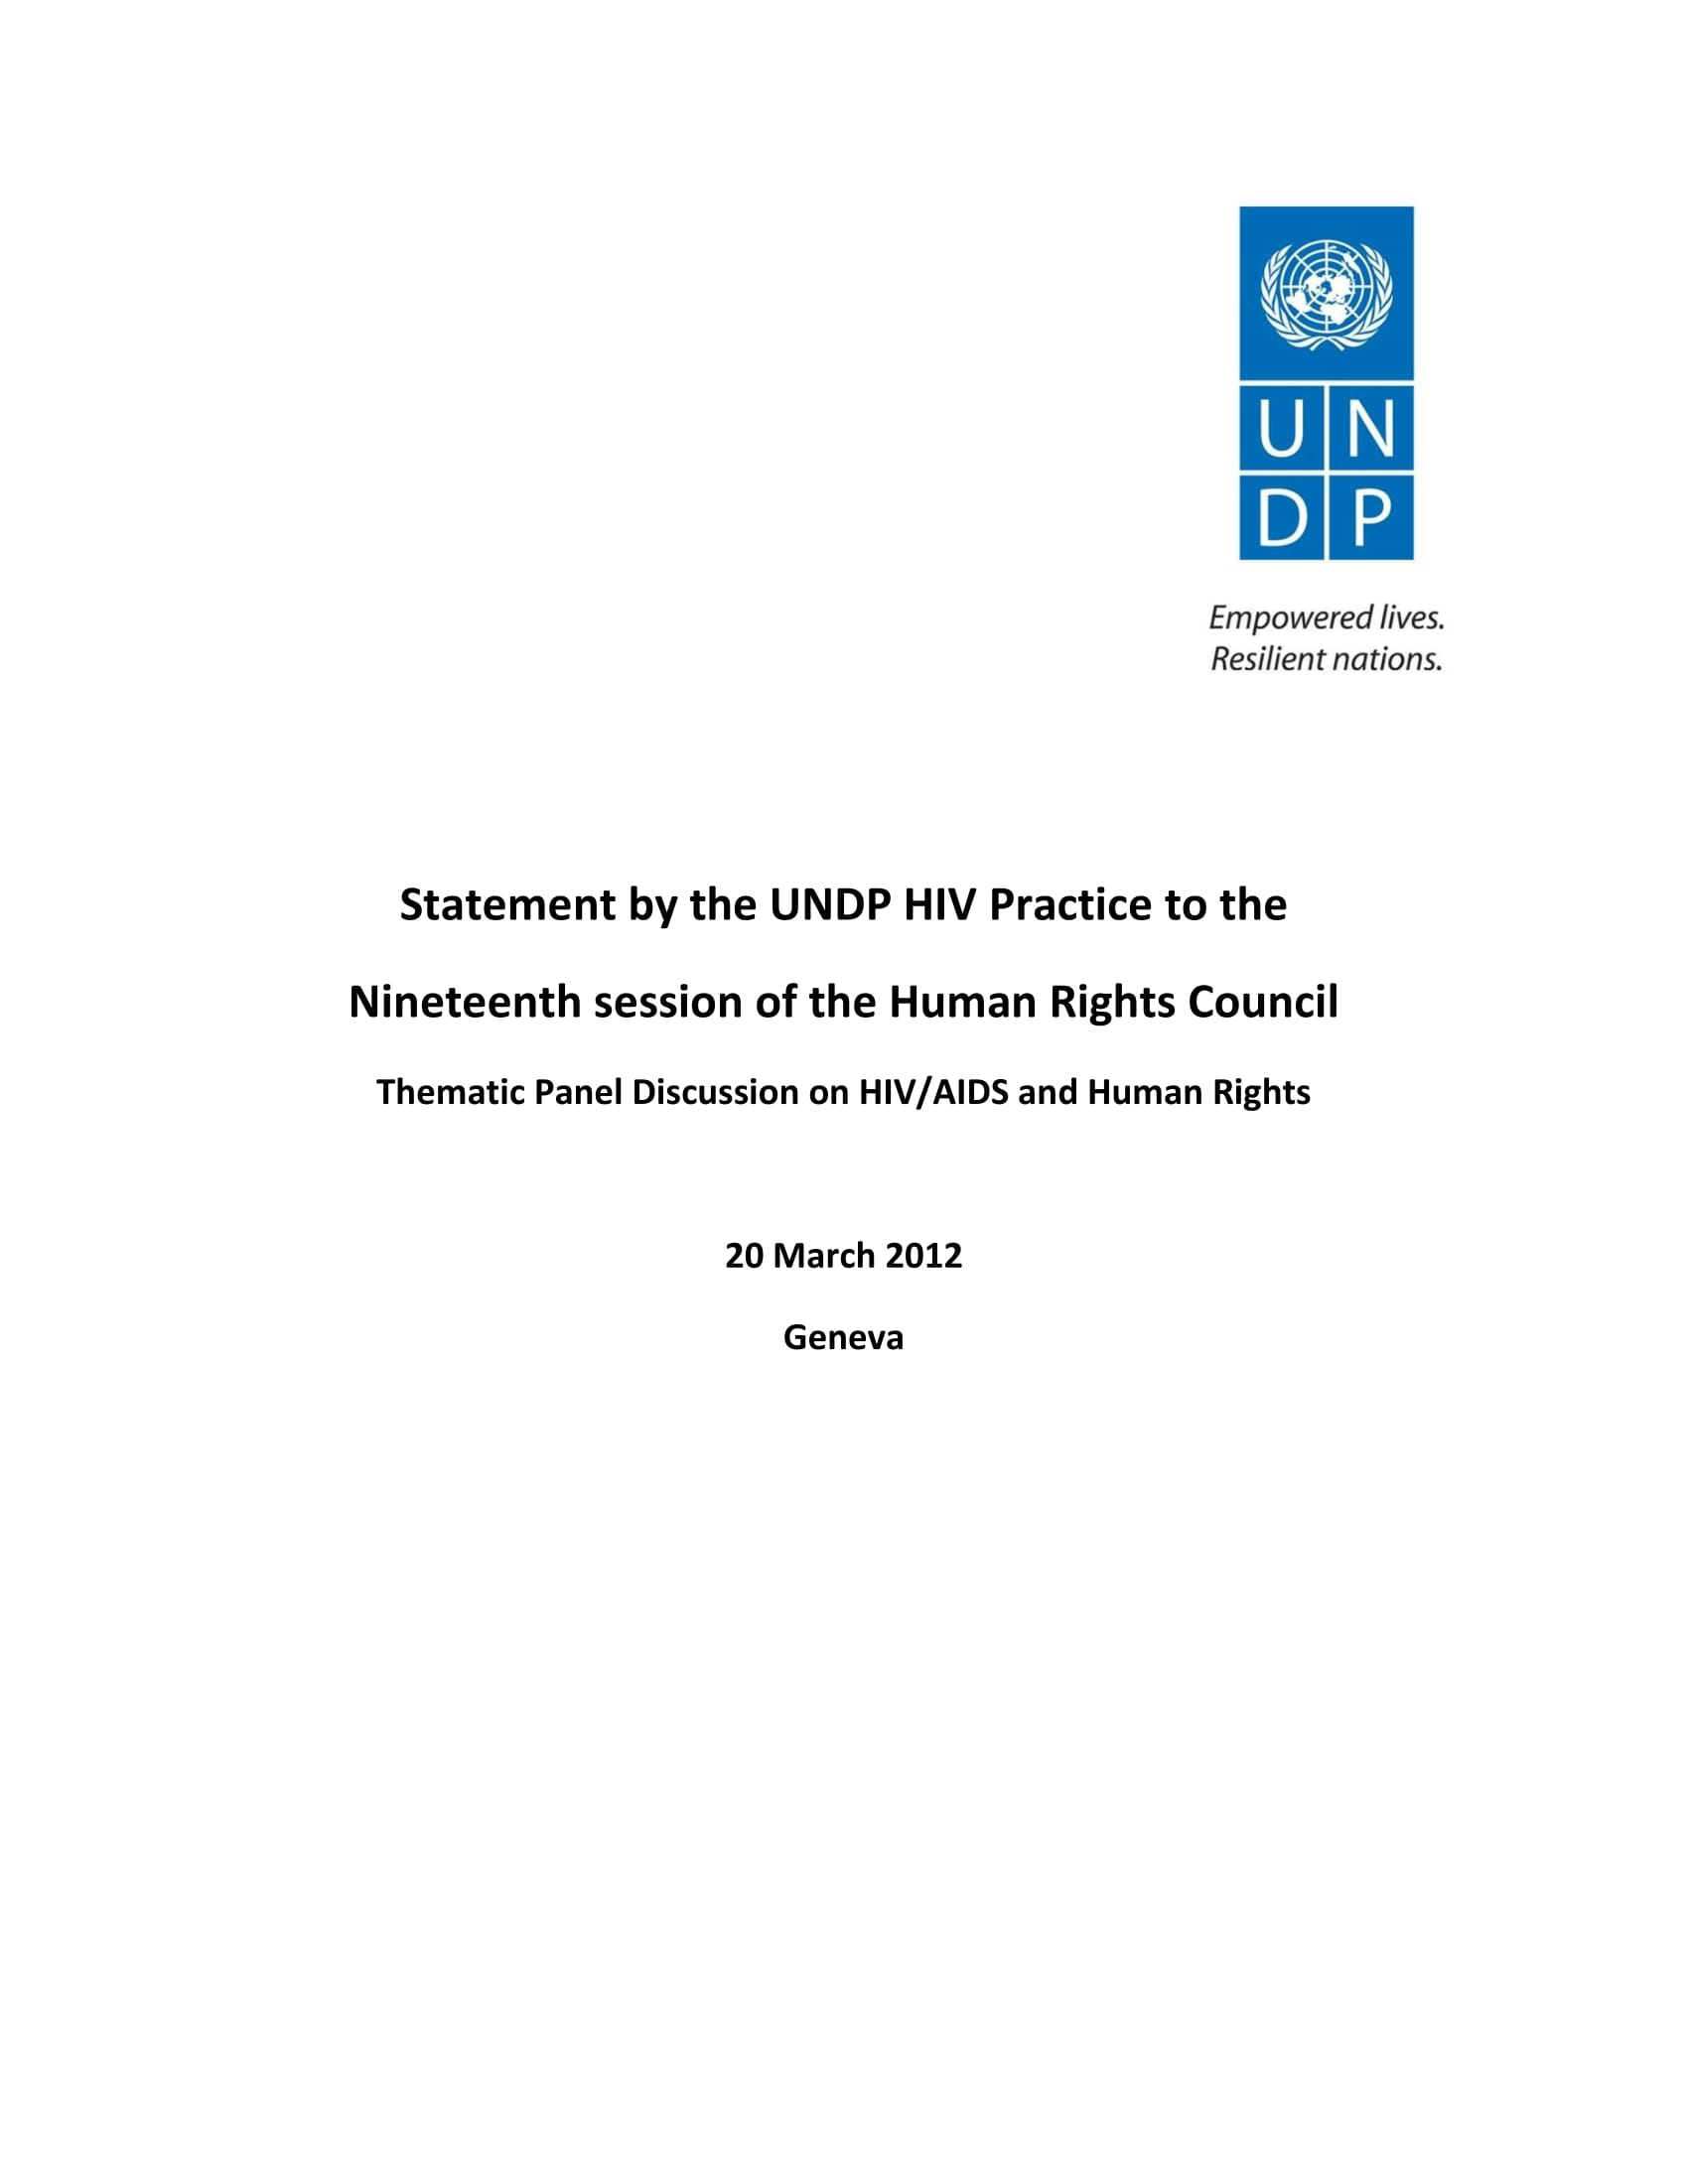 UNDP statement to the 19th Session of the Human Rights Council